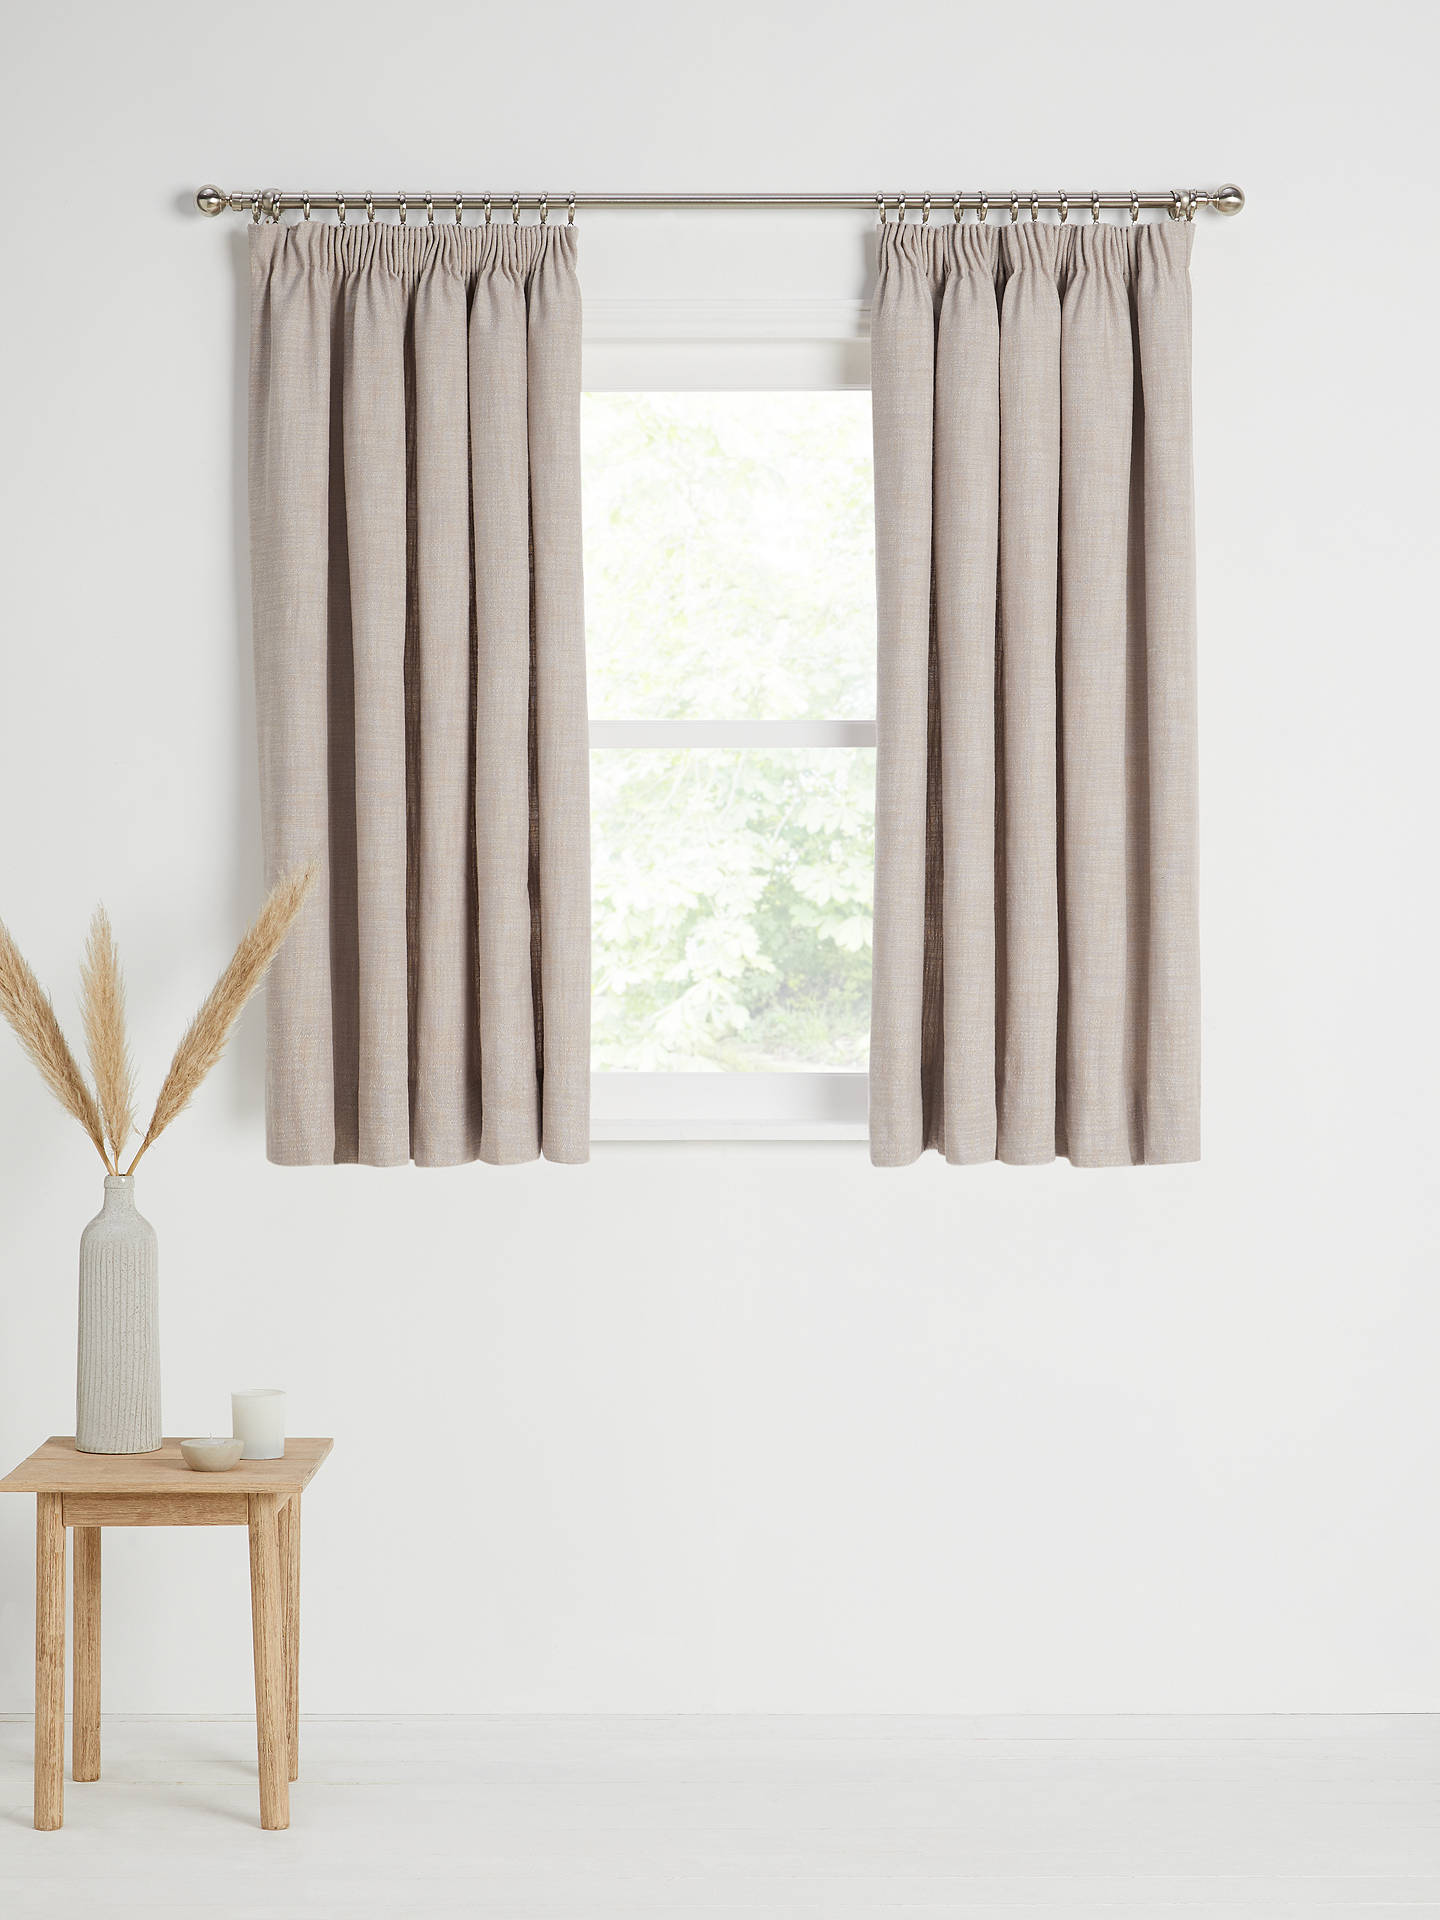 Buy Croft Collection Skye Pair Lined Pencil Pleat Curtains, Rosa, W167 x Drop 137cm Online at johnlewis.com